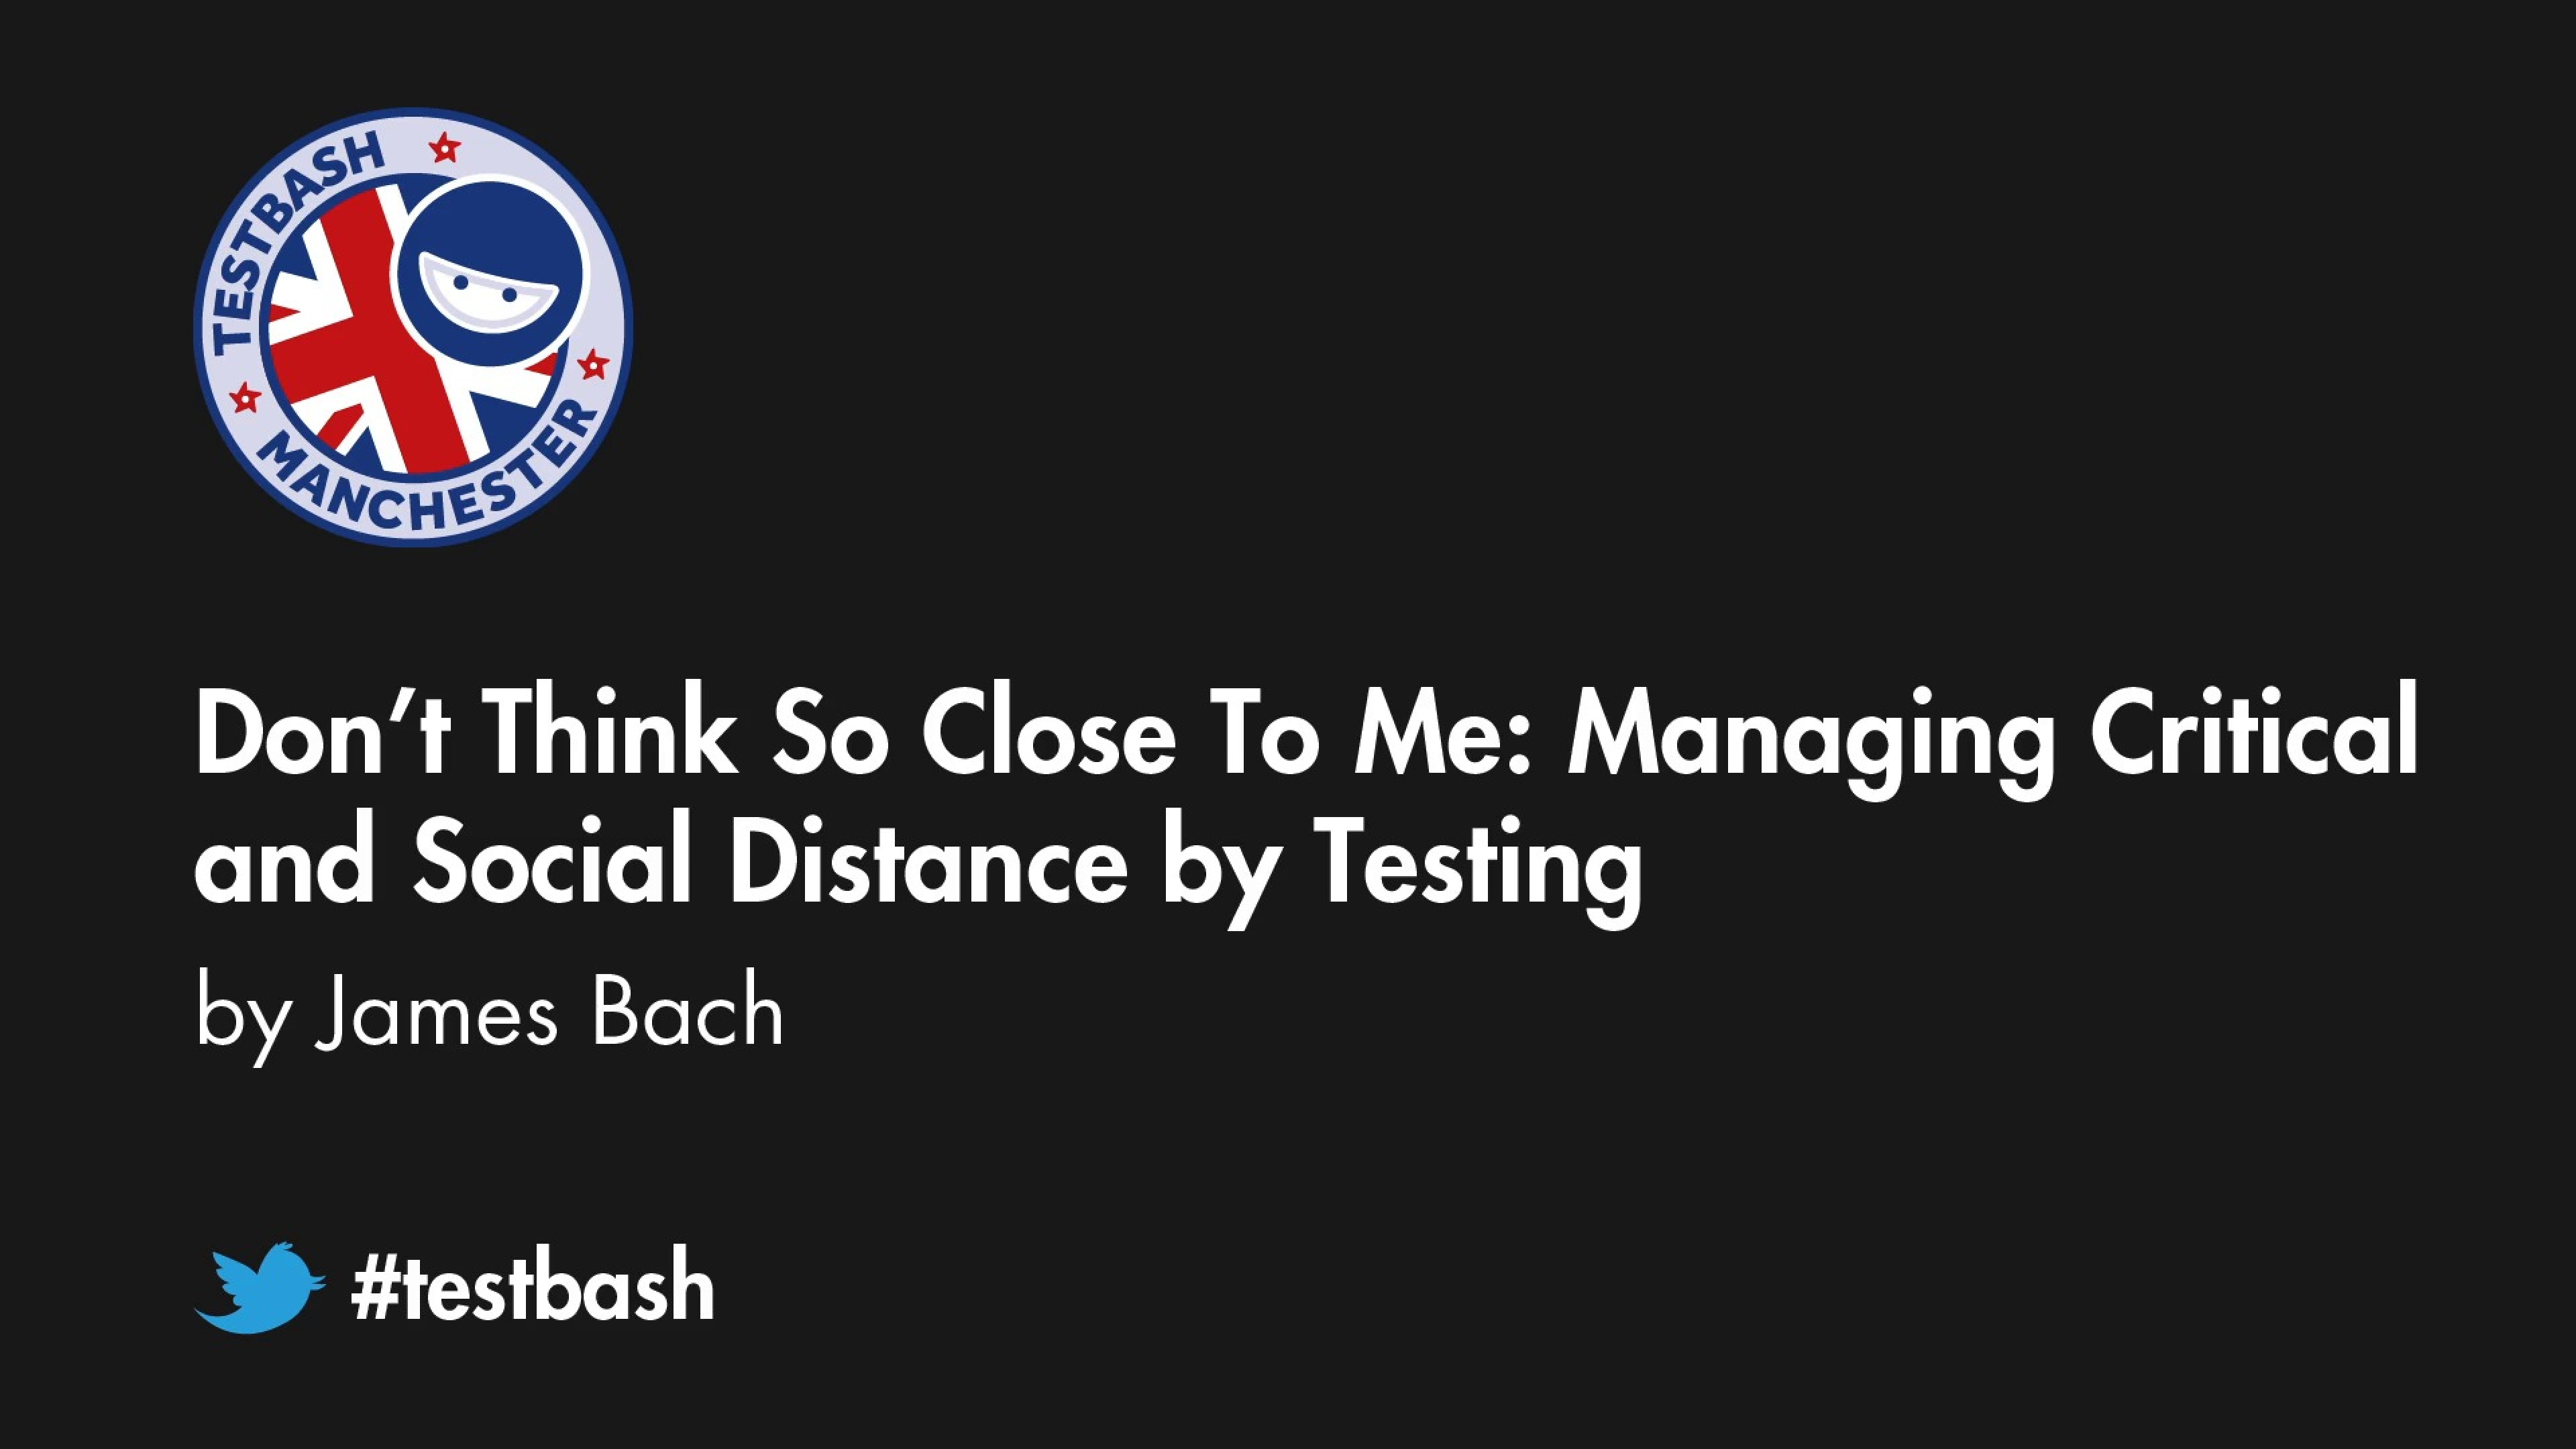 Don't Think So Close To Me - Managing Critical and Social Distance in Testing – James Bach